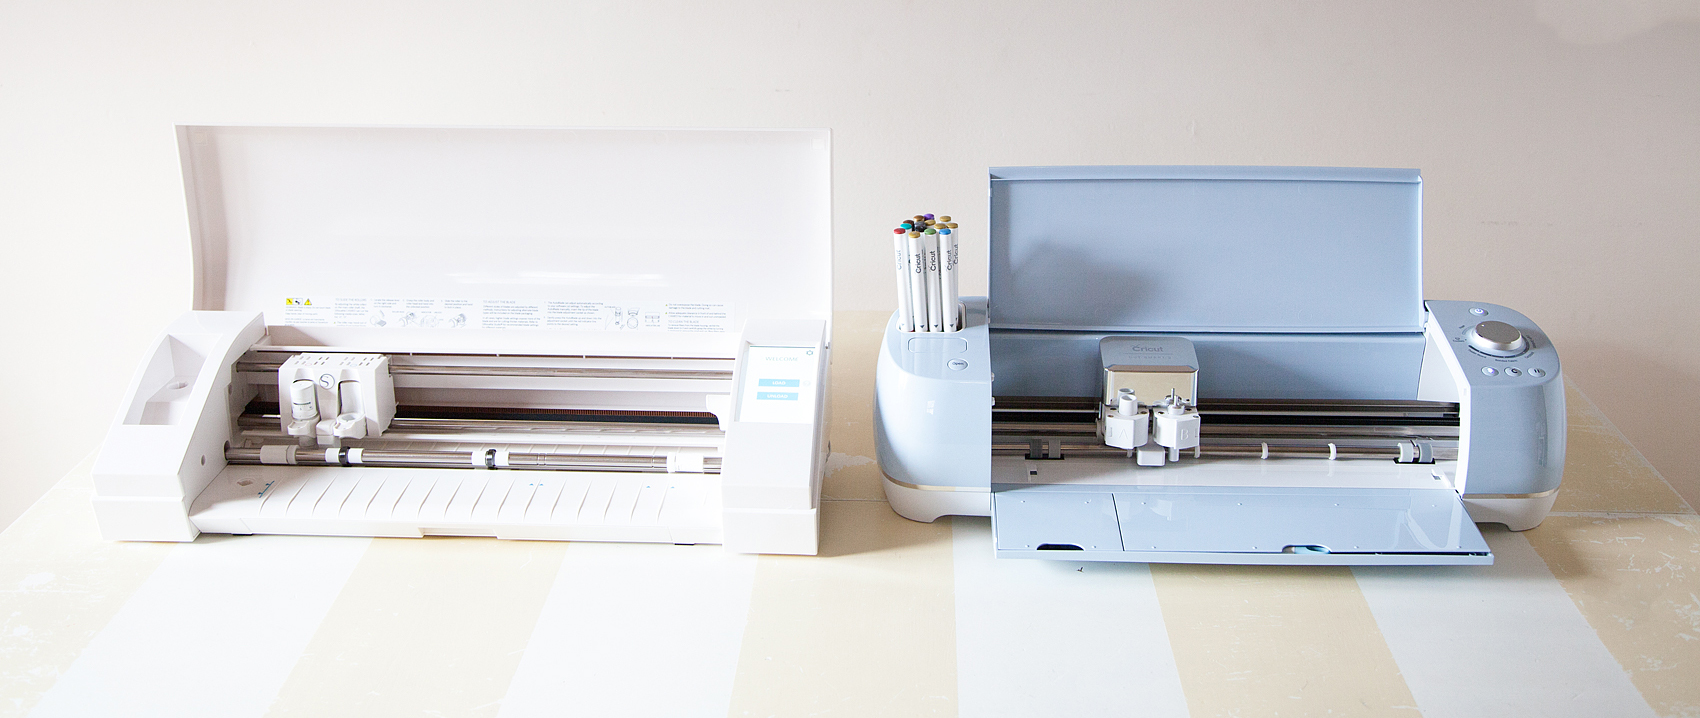 Cricut-vs.-Silhouette-via-WhipperBerry-9